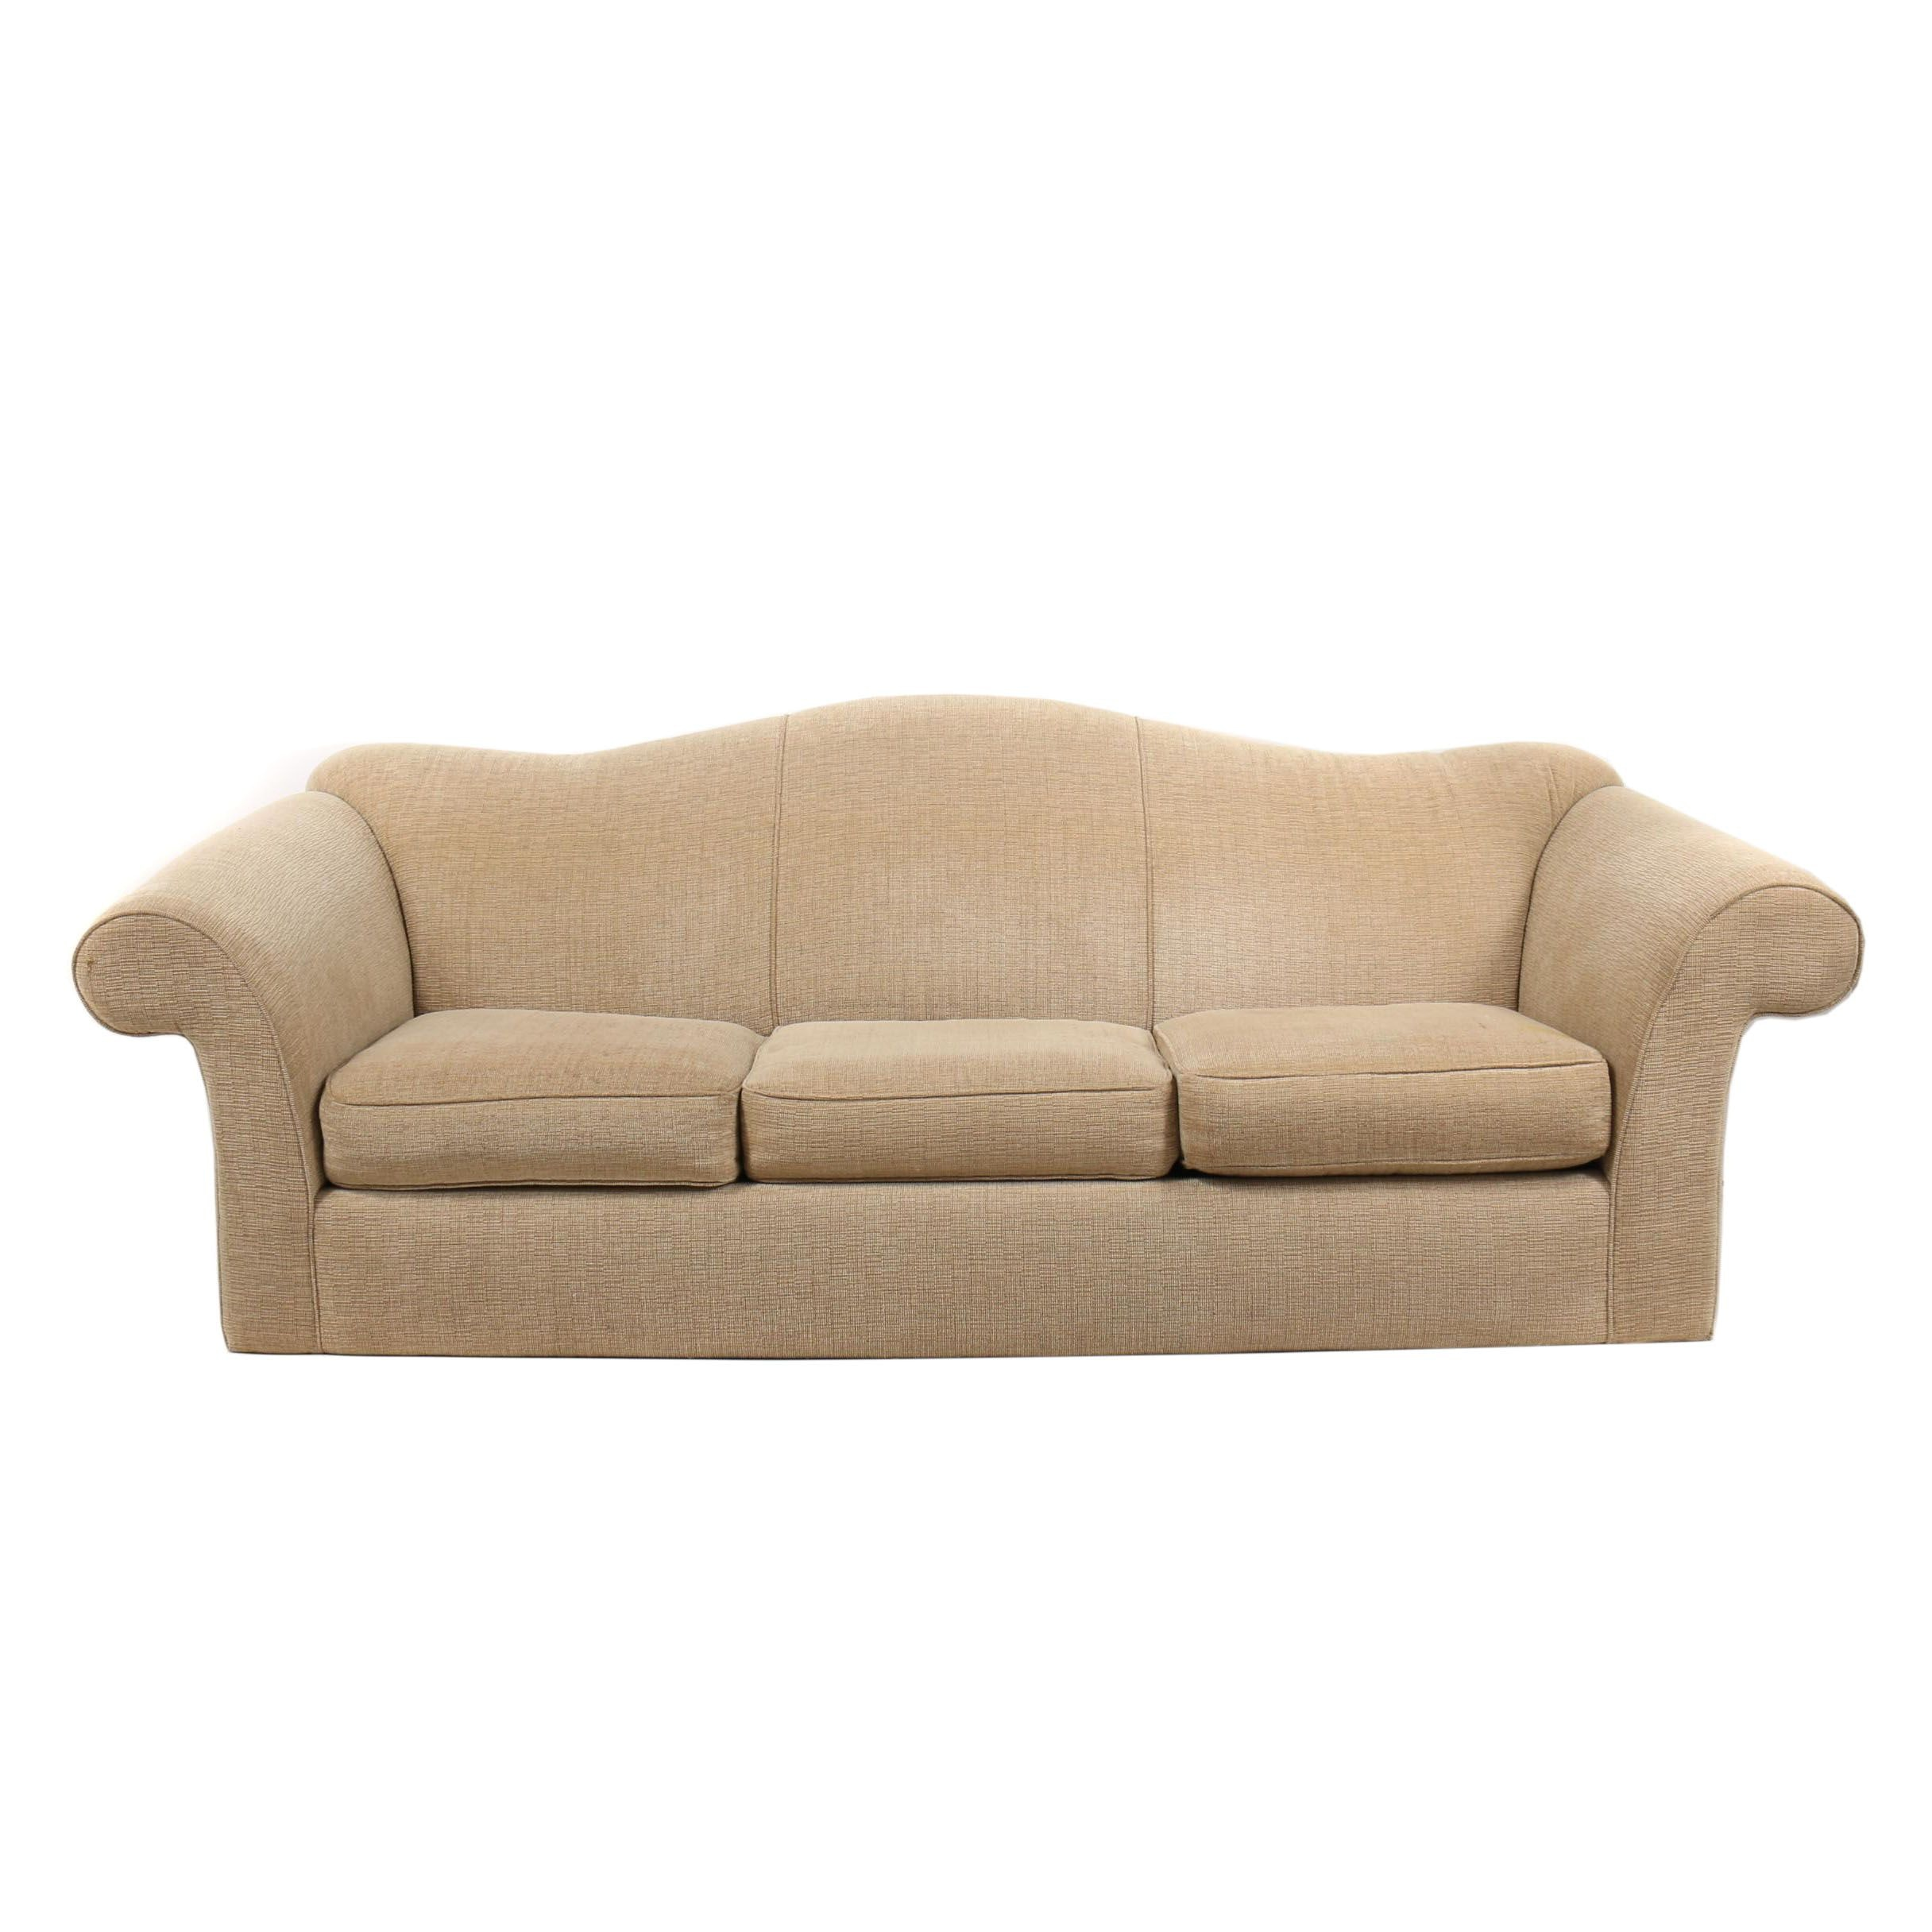 Upholstered Sleeper Sofa, 21st Century